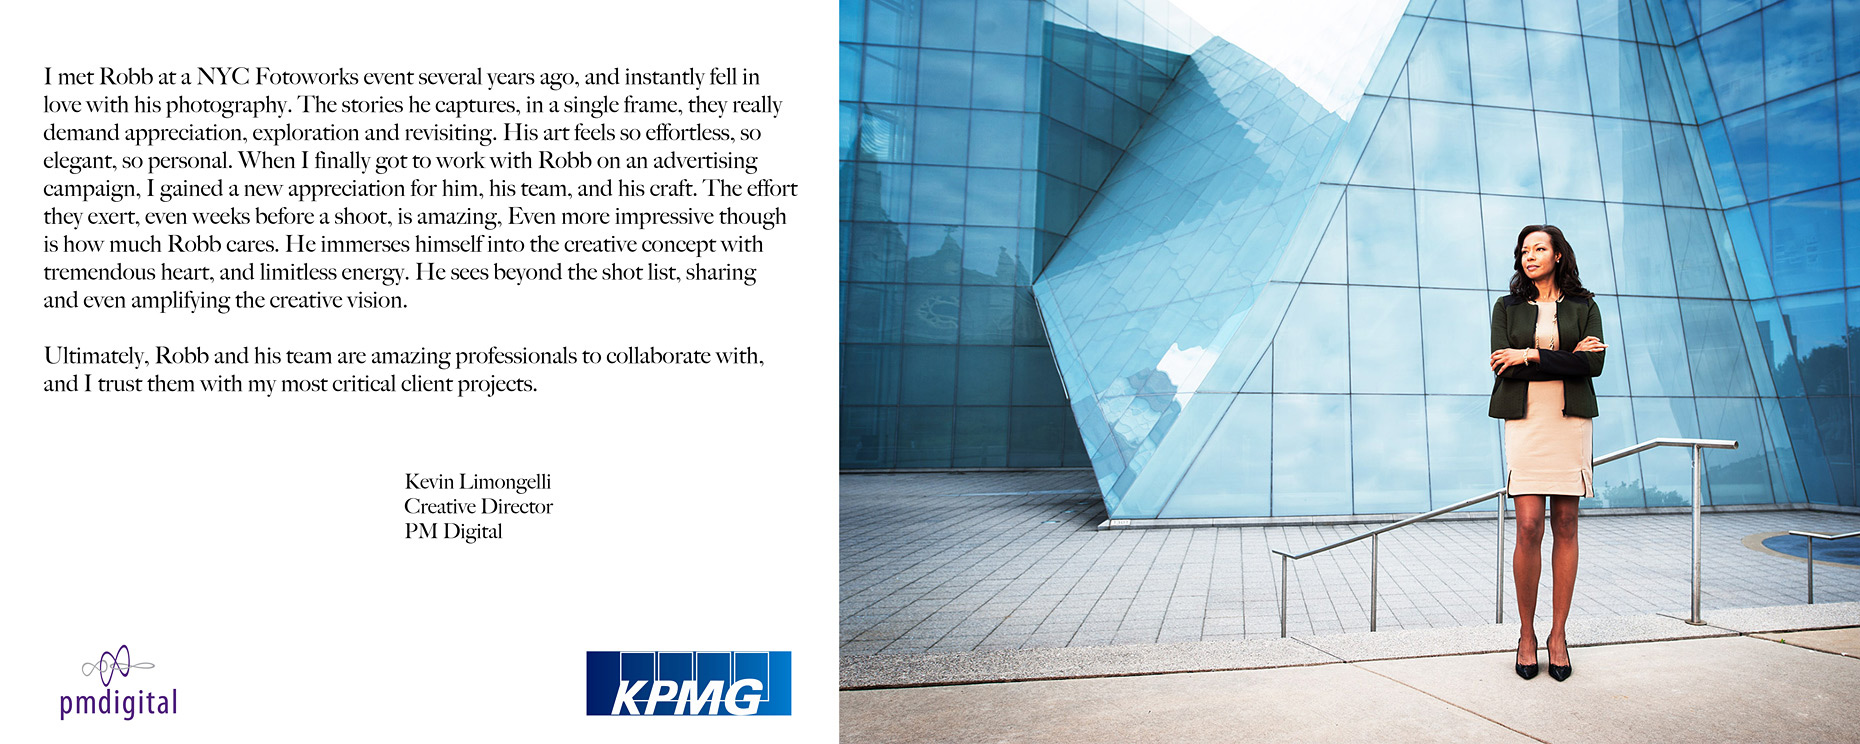 Kevin-Limongelli_PM-digital-KPMG-praise-Recovered